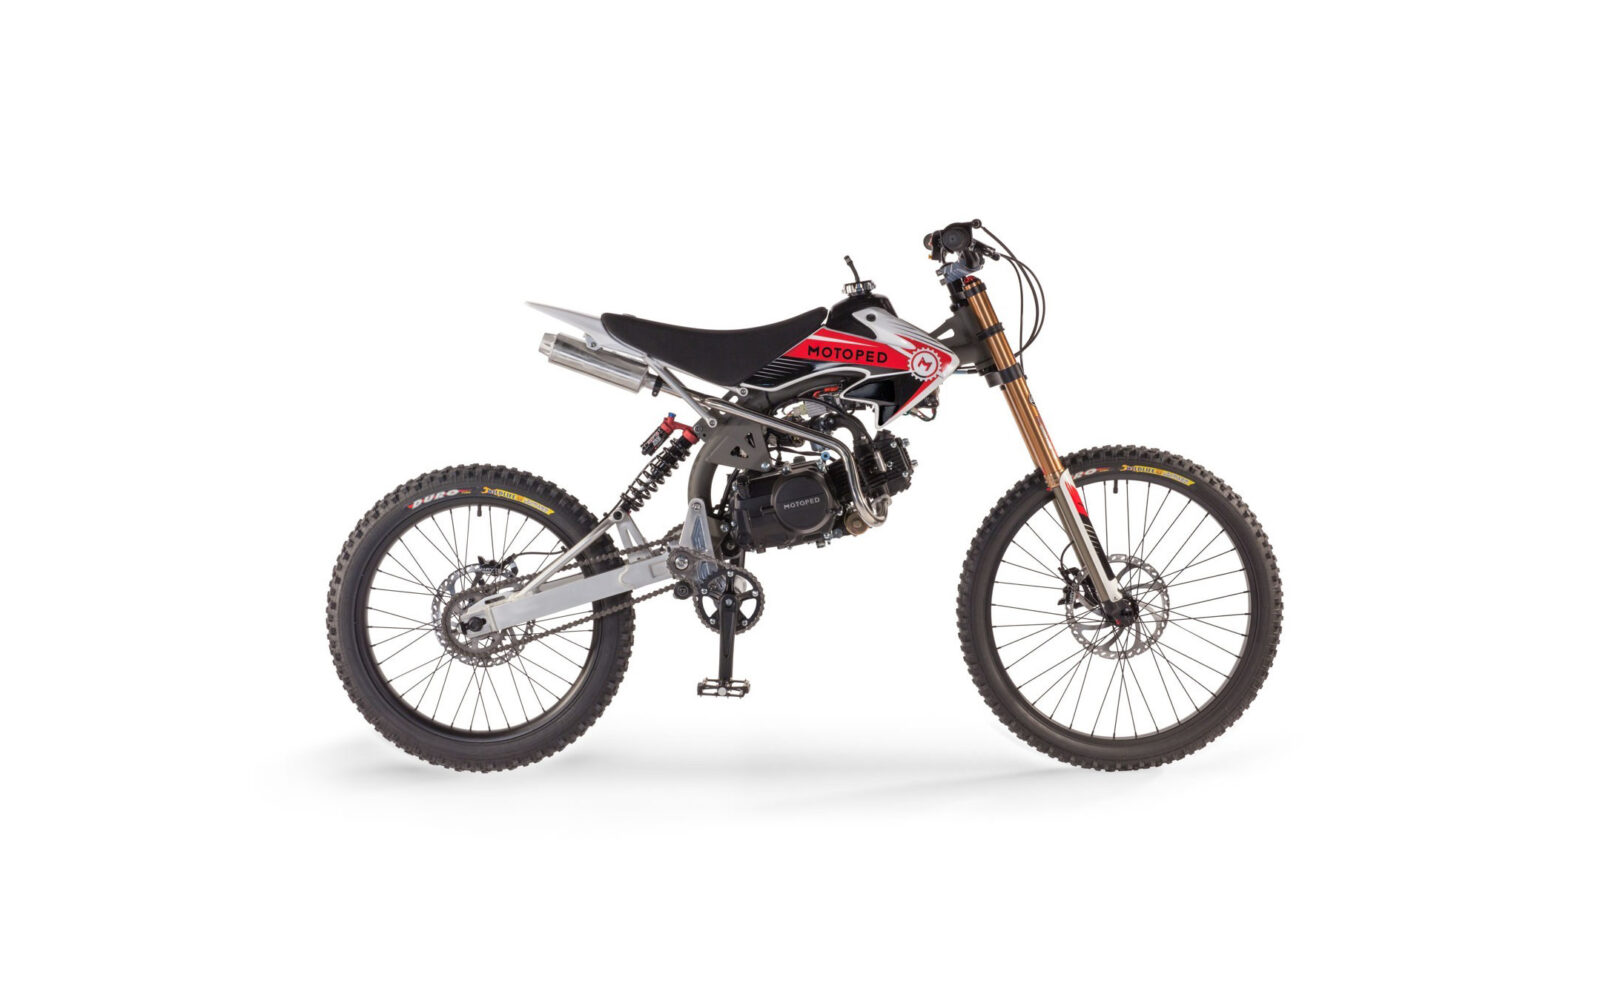 Motoped Pro motorized bicycle 1600x992 - Motoped® Pro